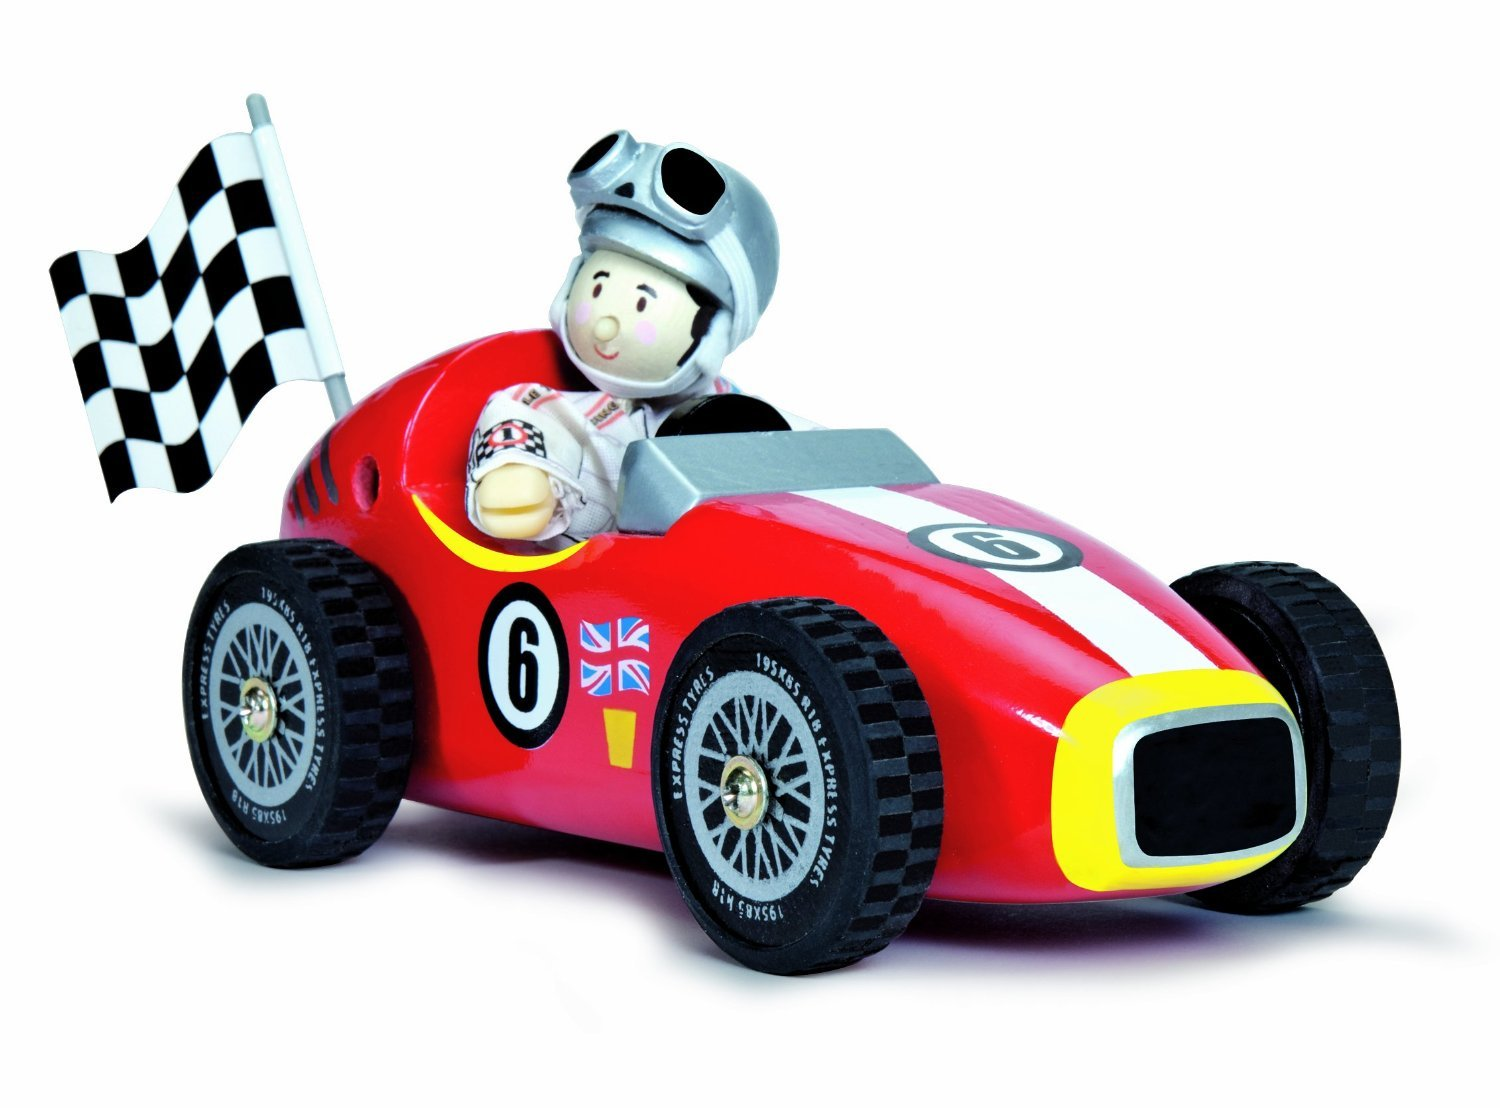 Le Toy Van: Budkins - World Red Retro Racer and Budkin image